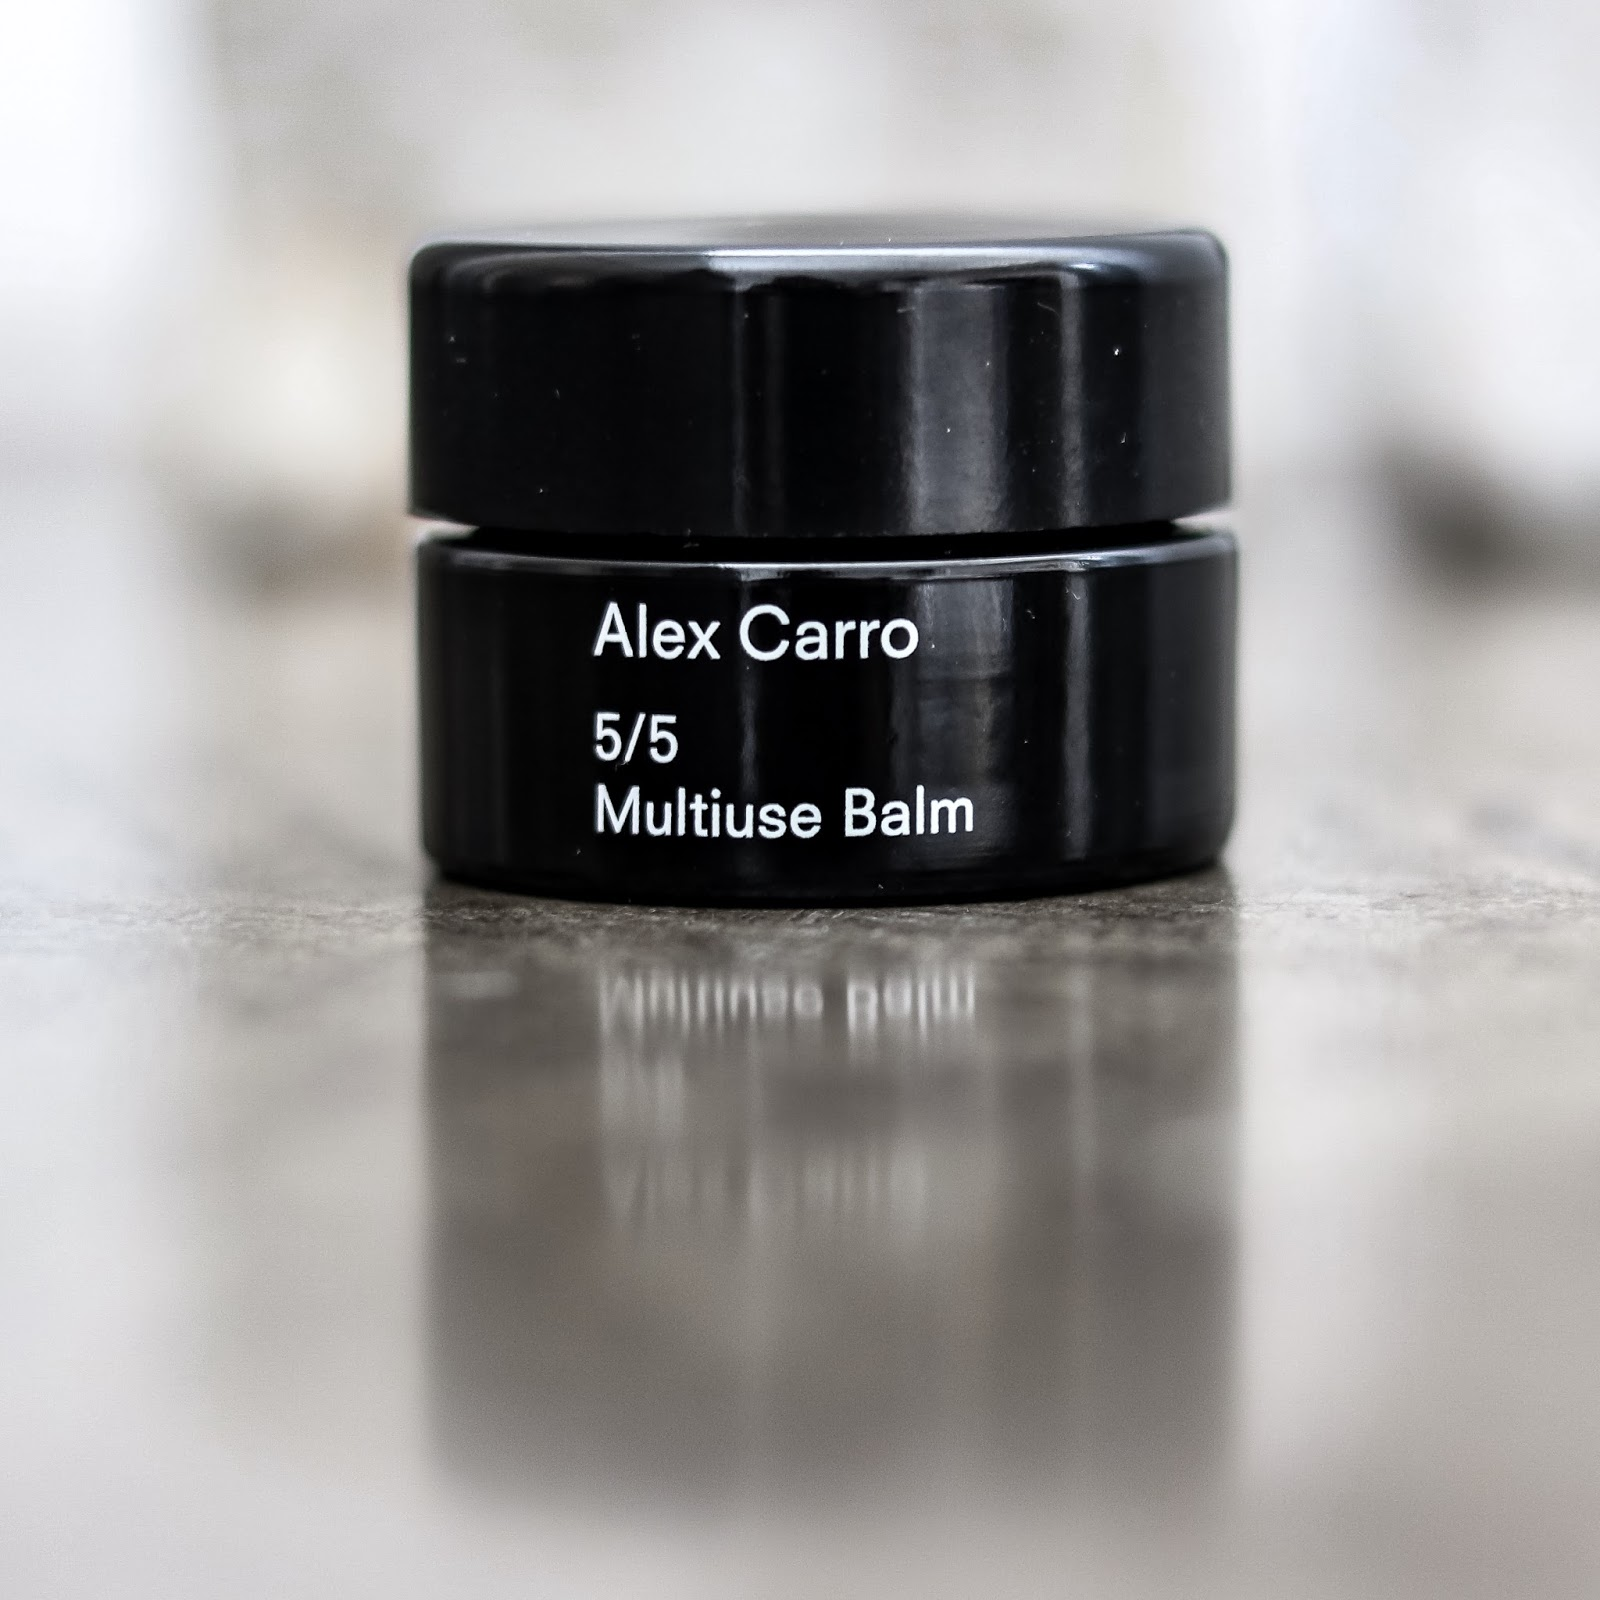 Multipurpose Balm Alex Carro Minimal Skincare Review by Almost Chic Blog